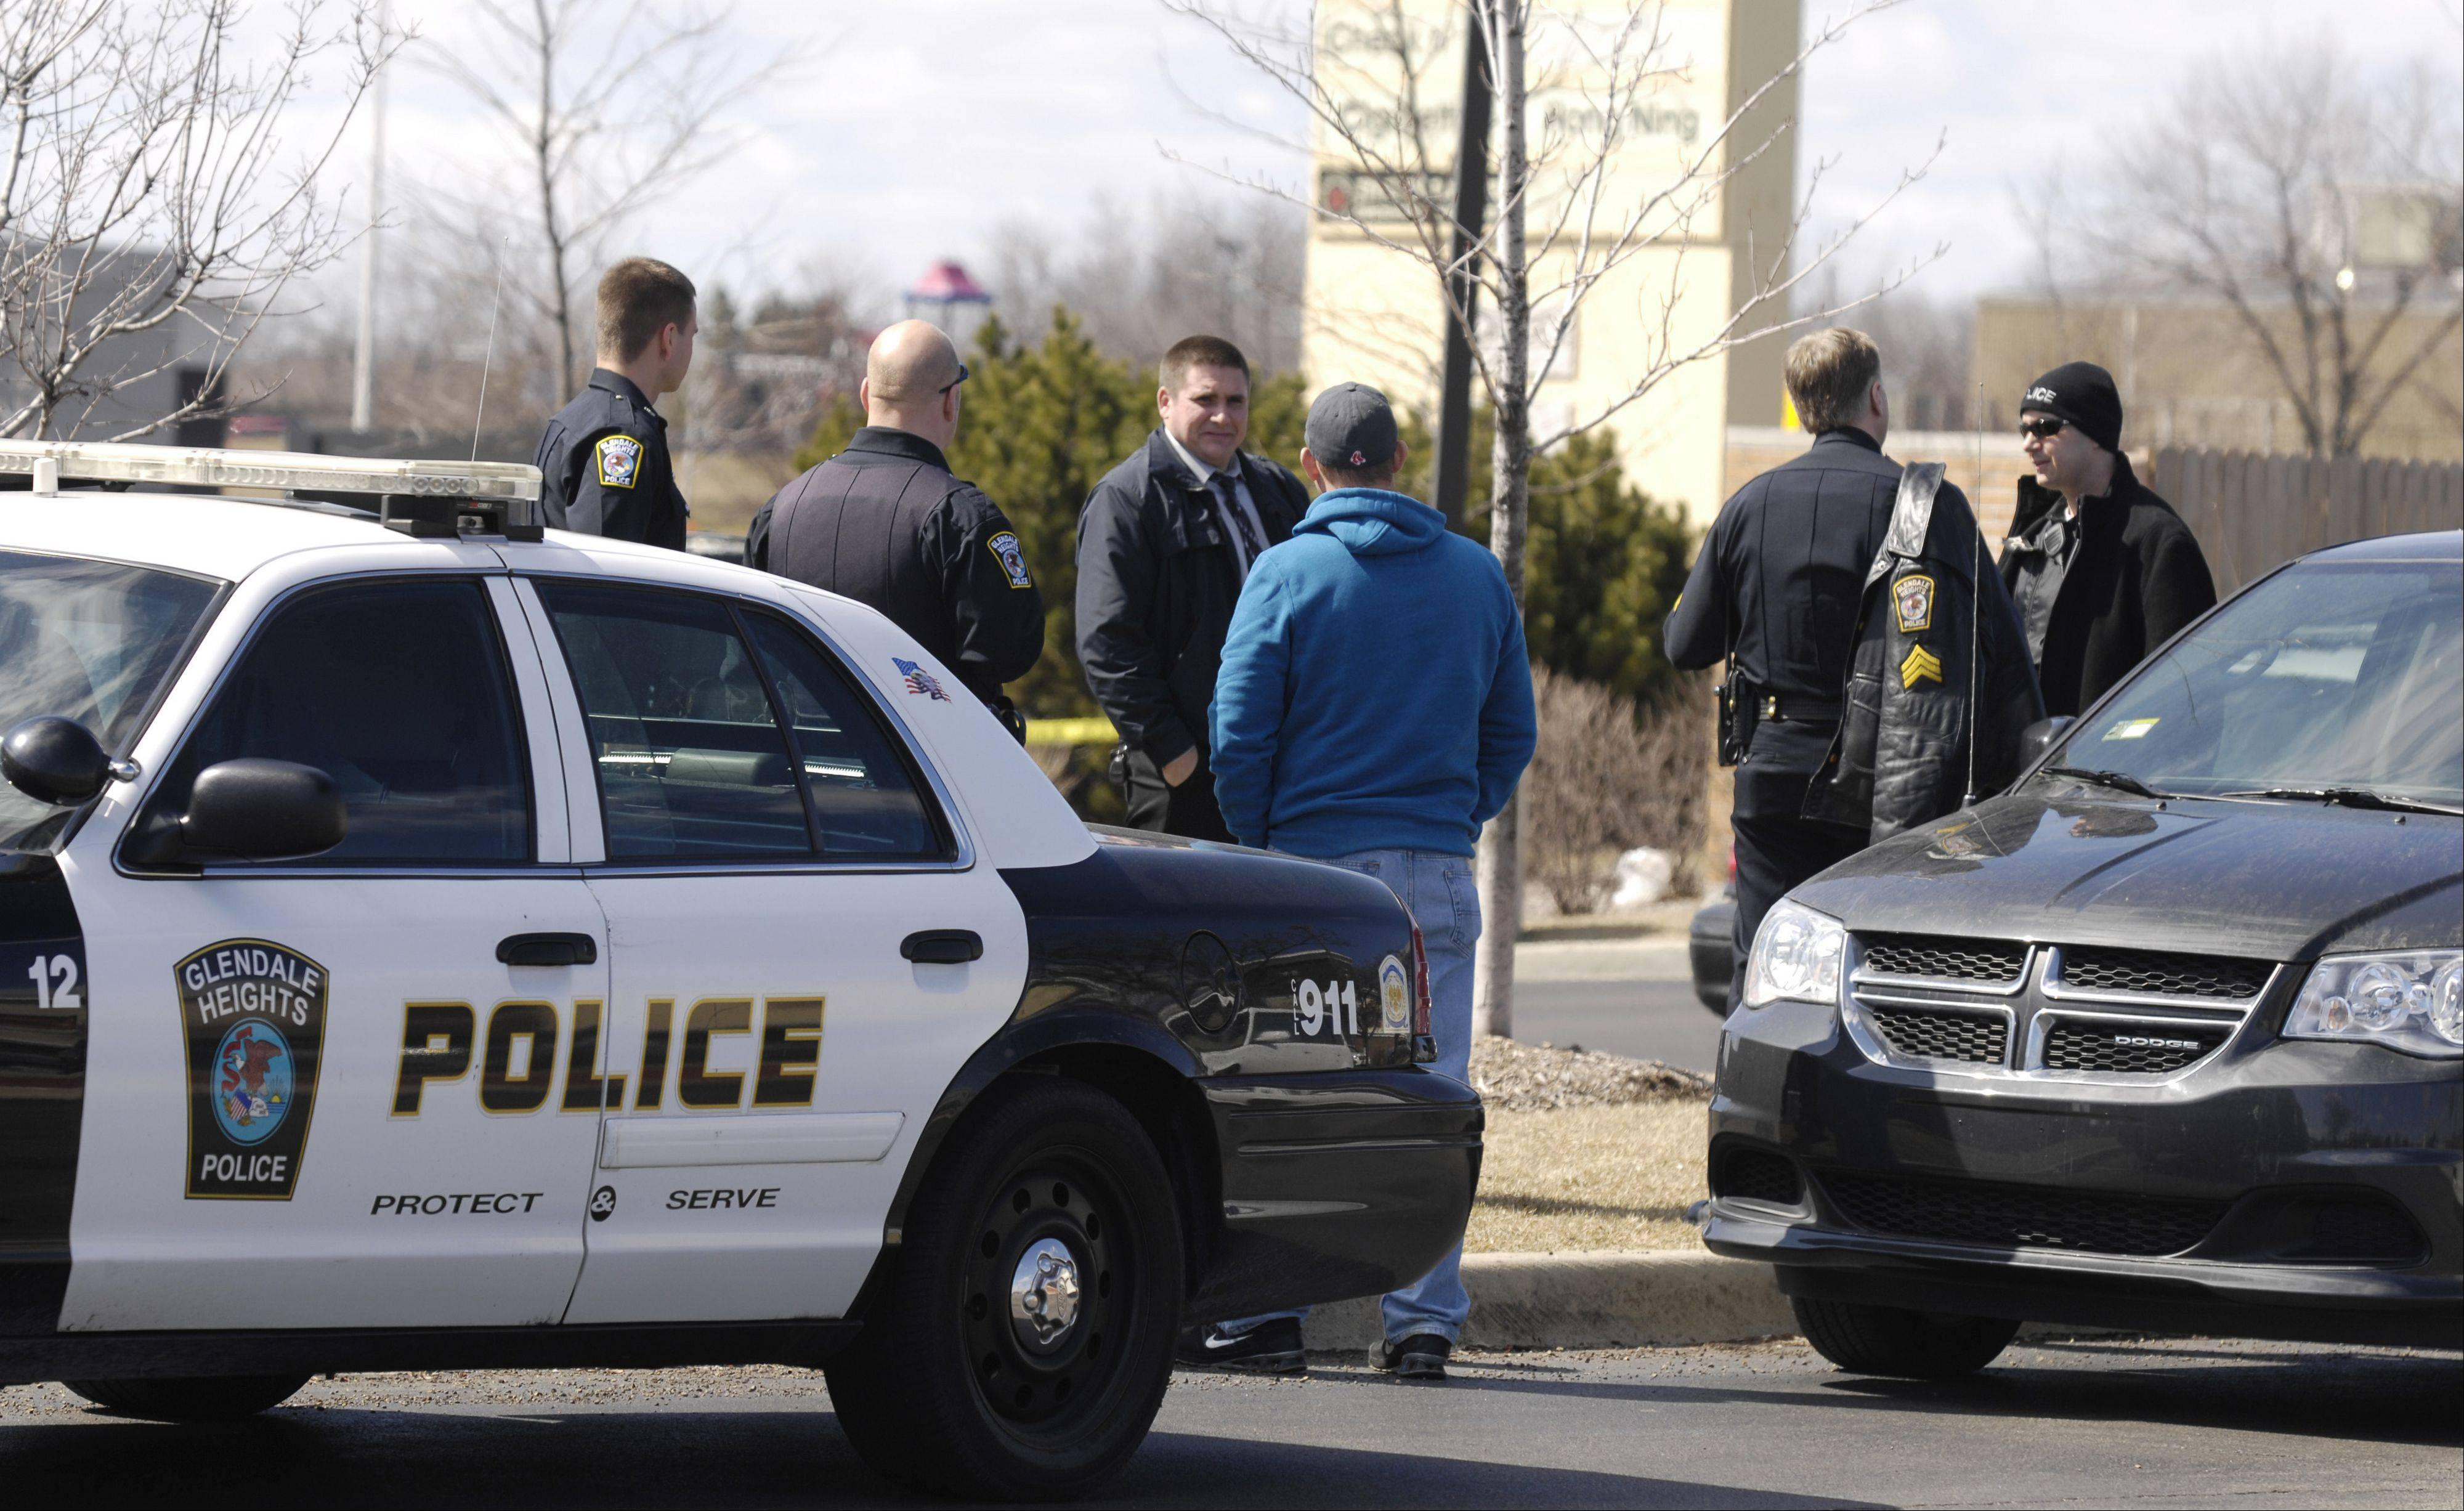 Glendale Heights police investigate a bank robbery Monday at the Chase Bank branch at Army Trail and Bloomingdale roads. Authorities said the robber told a teller he had a weapon, but did not actually display one.